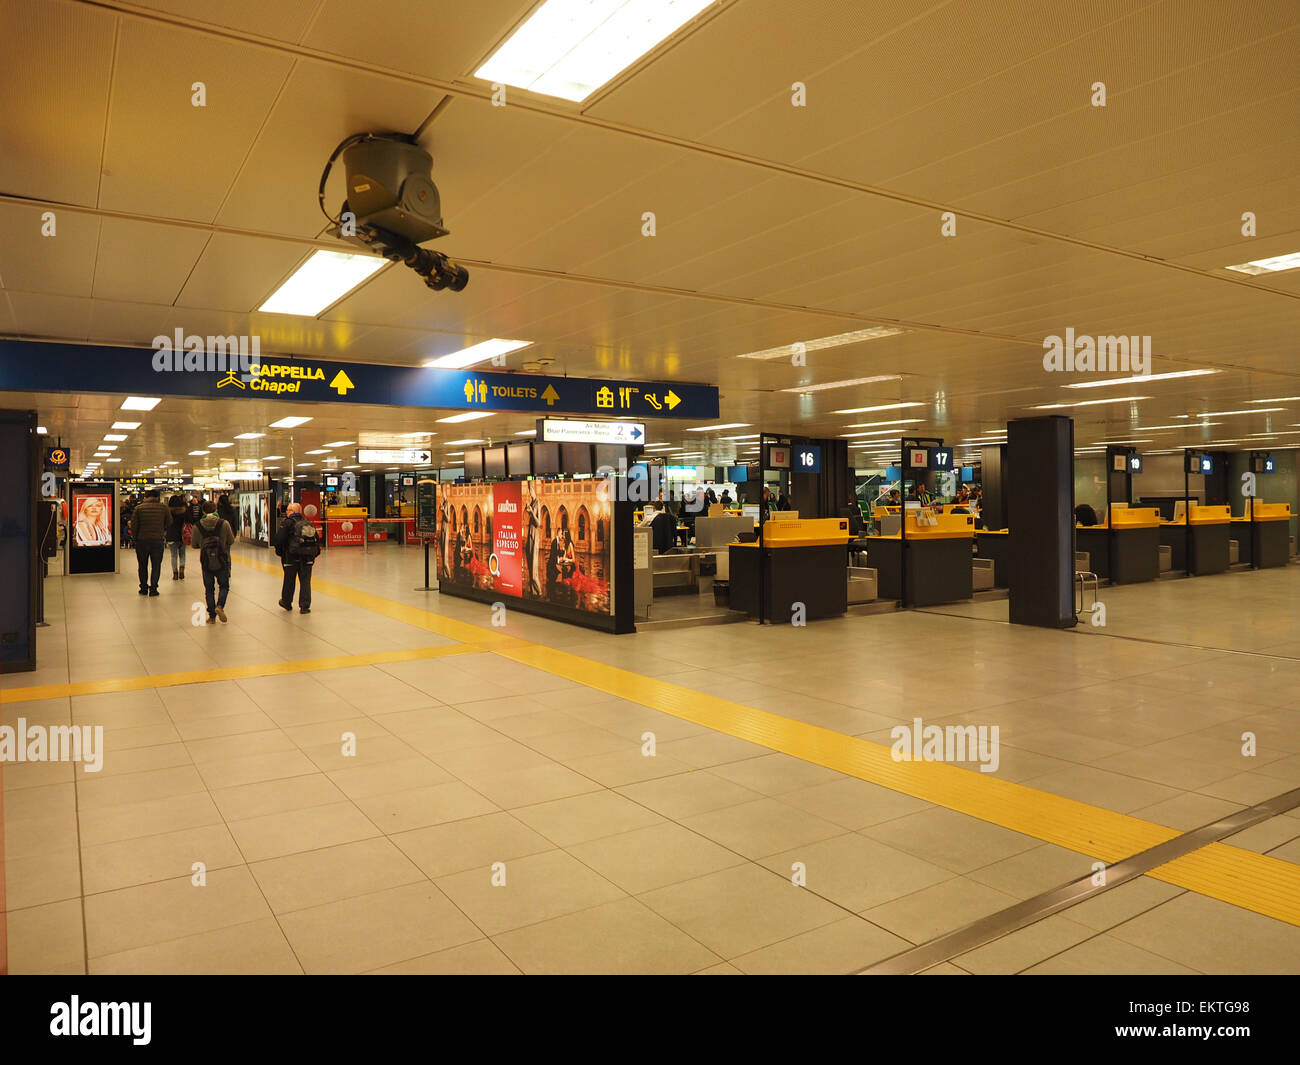 Linate airport, Milan, Lombardy, Italy, Europe - Stock Image